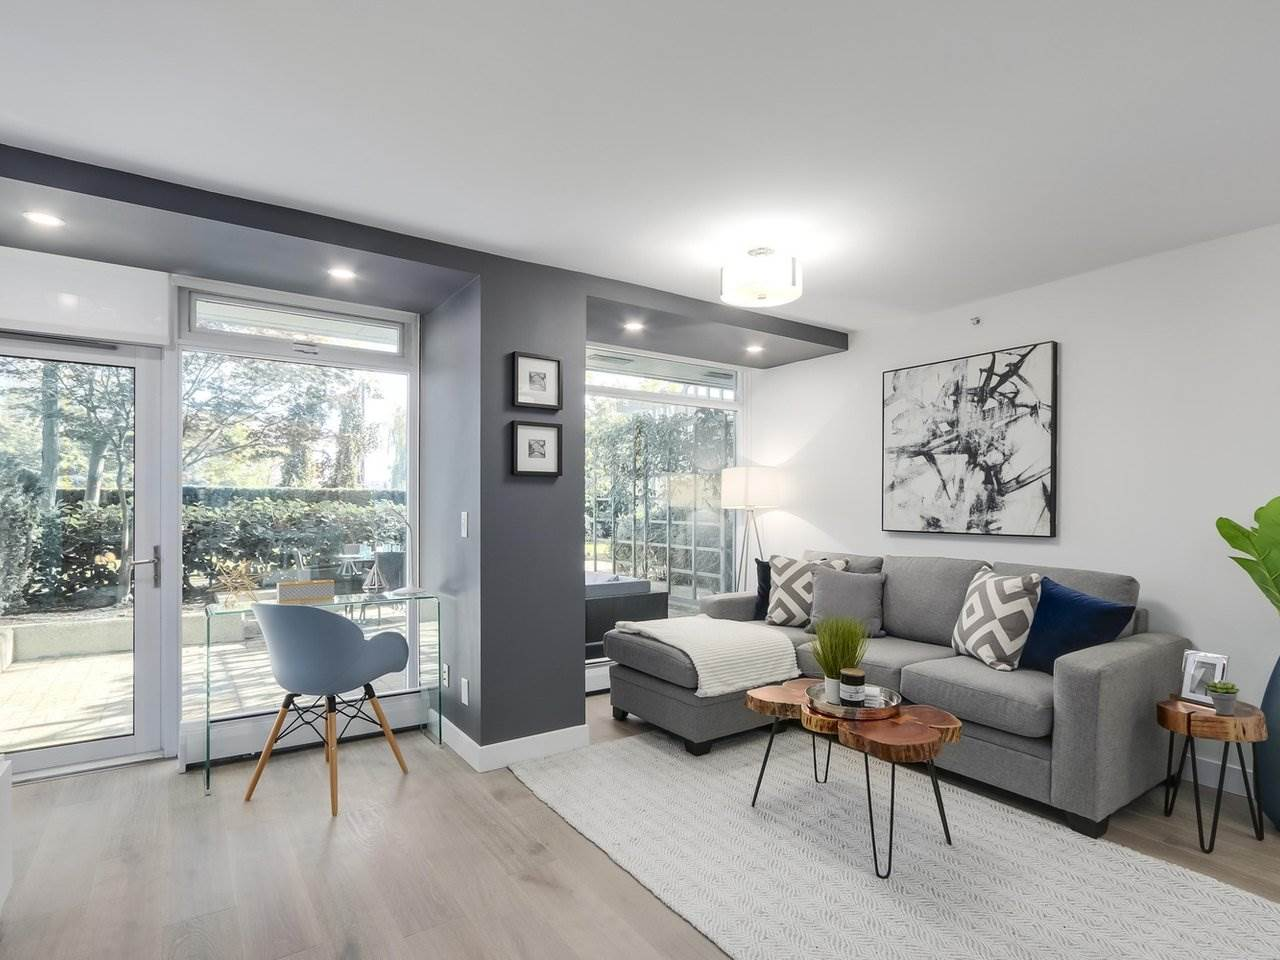 Buliding: 1388 Homer Street, Vancouver, BC